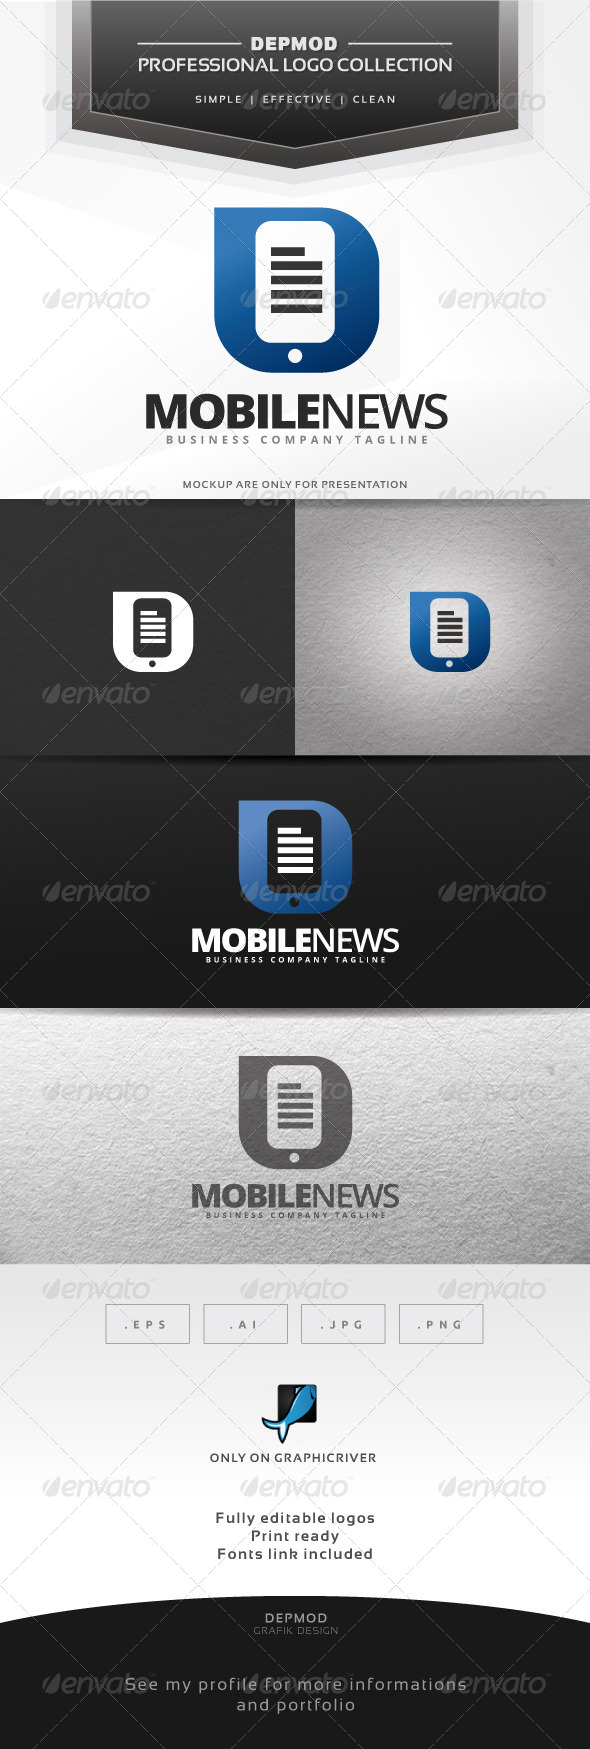 Mobile News Logo